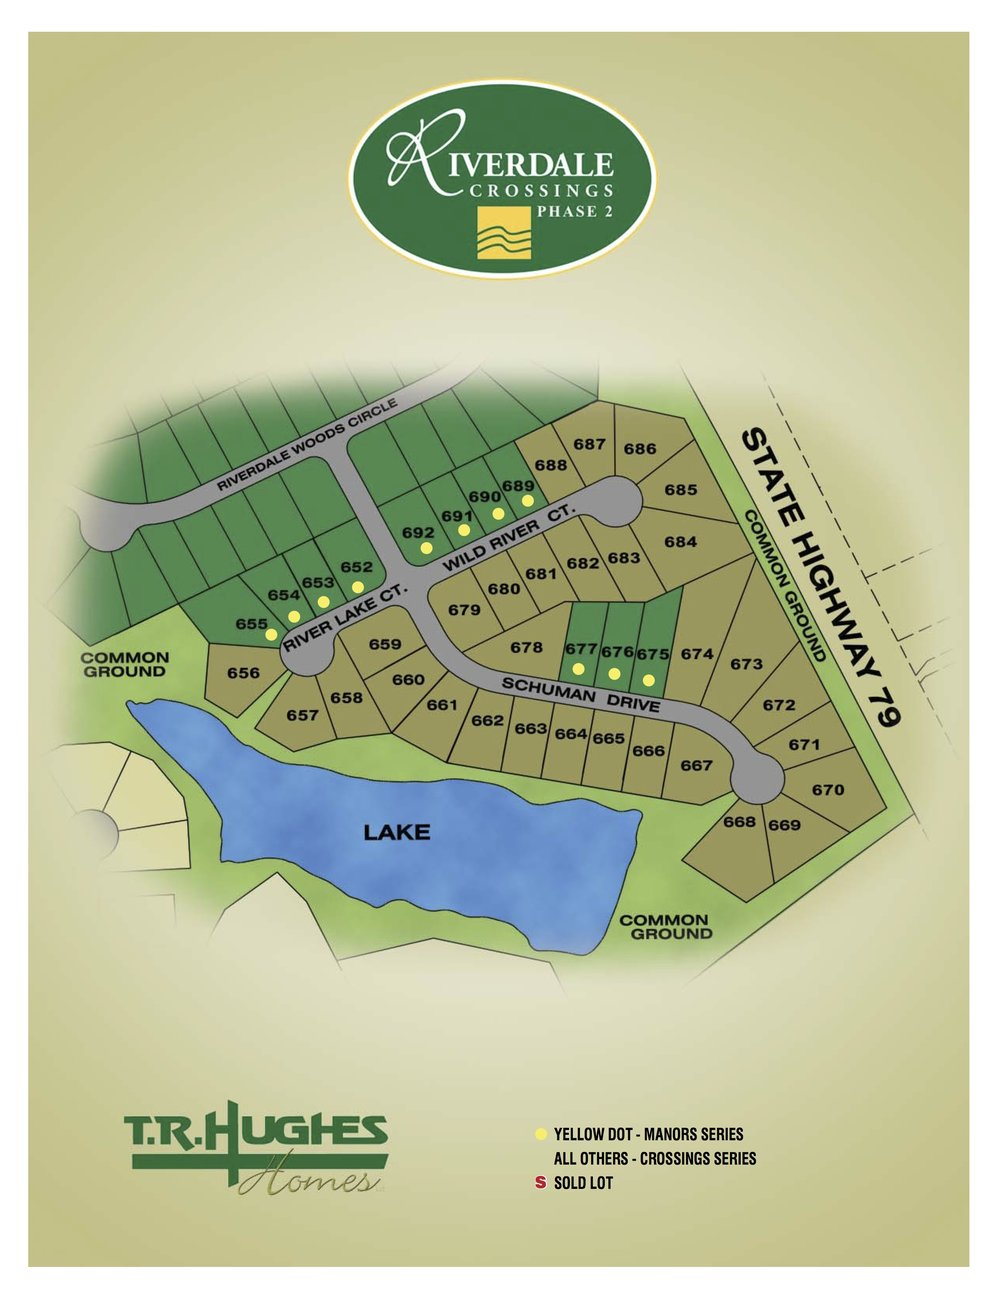 Riverdale Crossings Phase 2 plat map